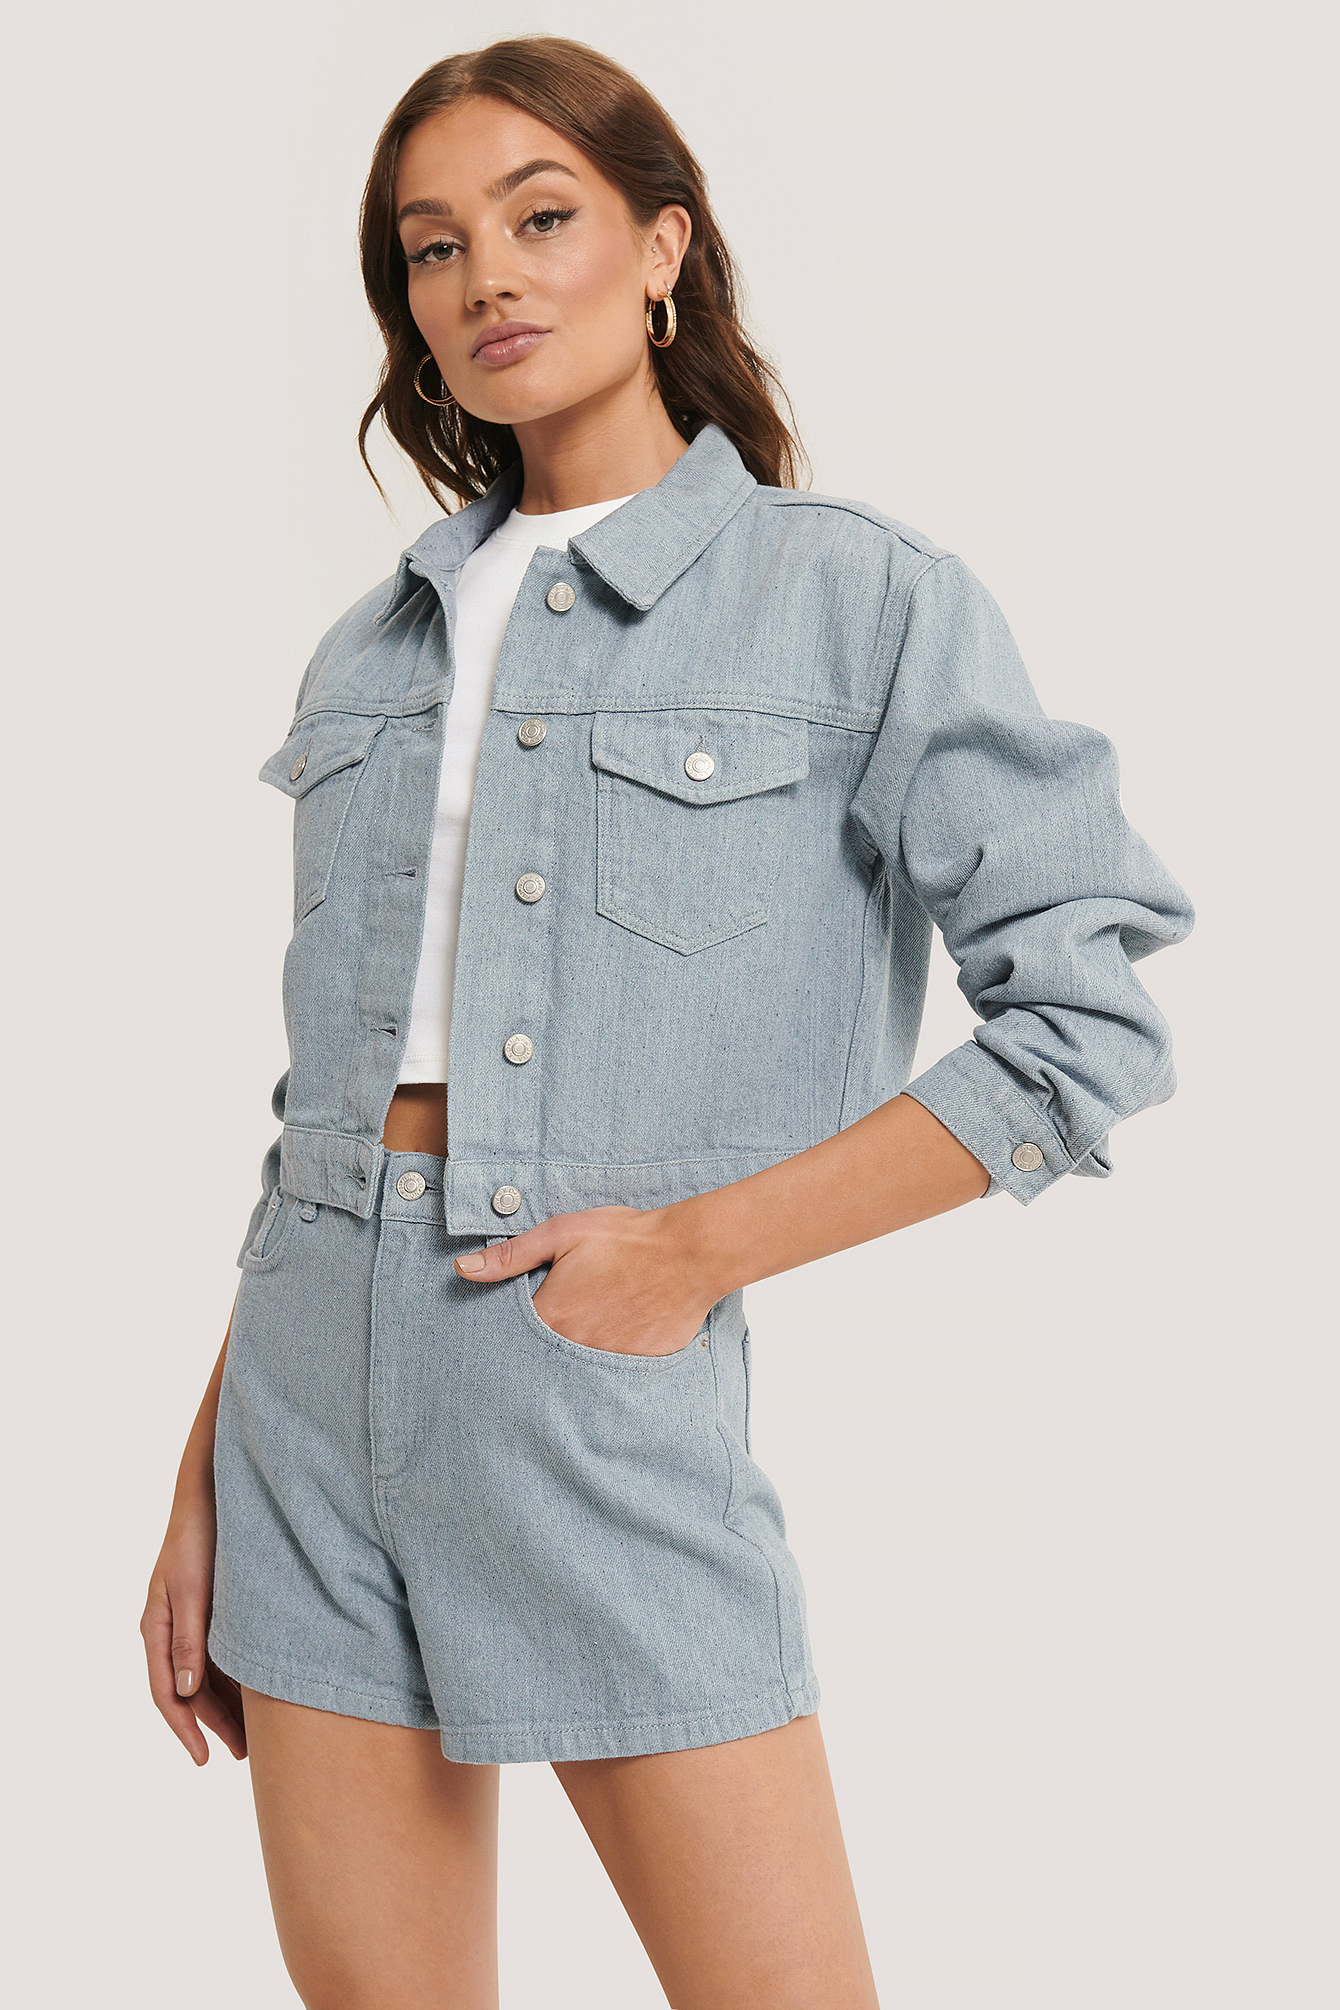 Light Blue Recycled Light Blue Denim Jacket